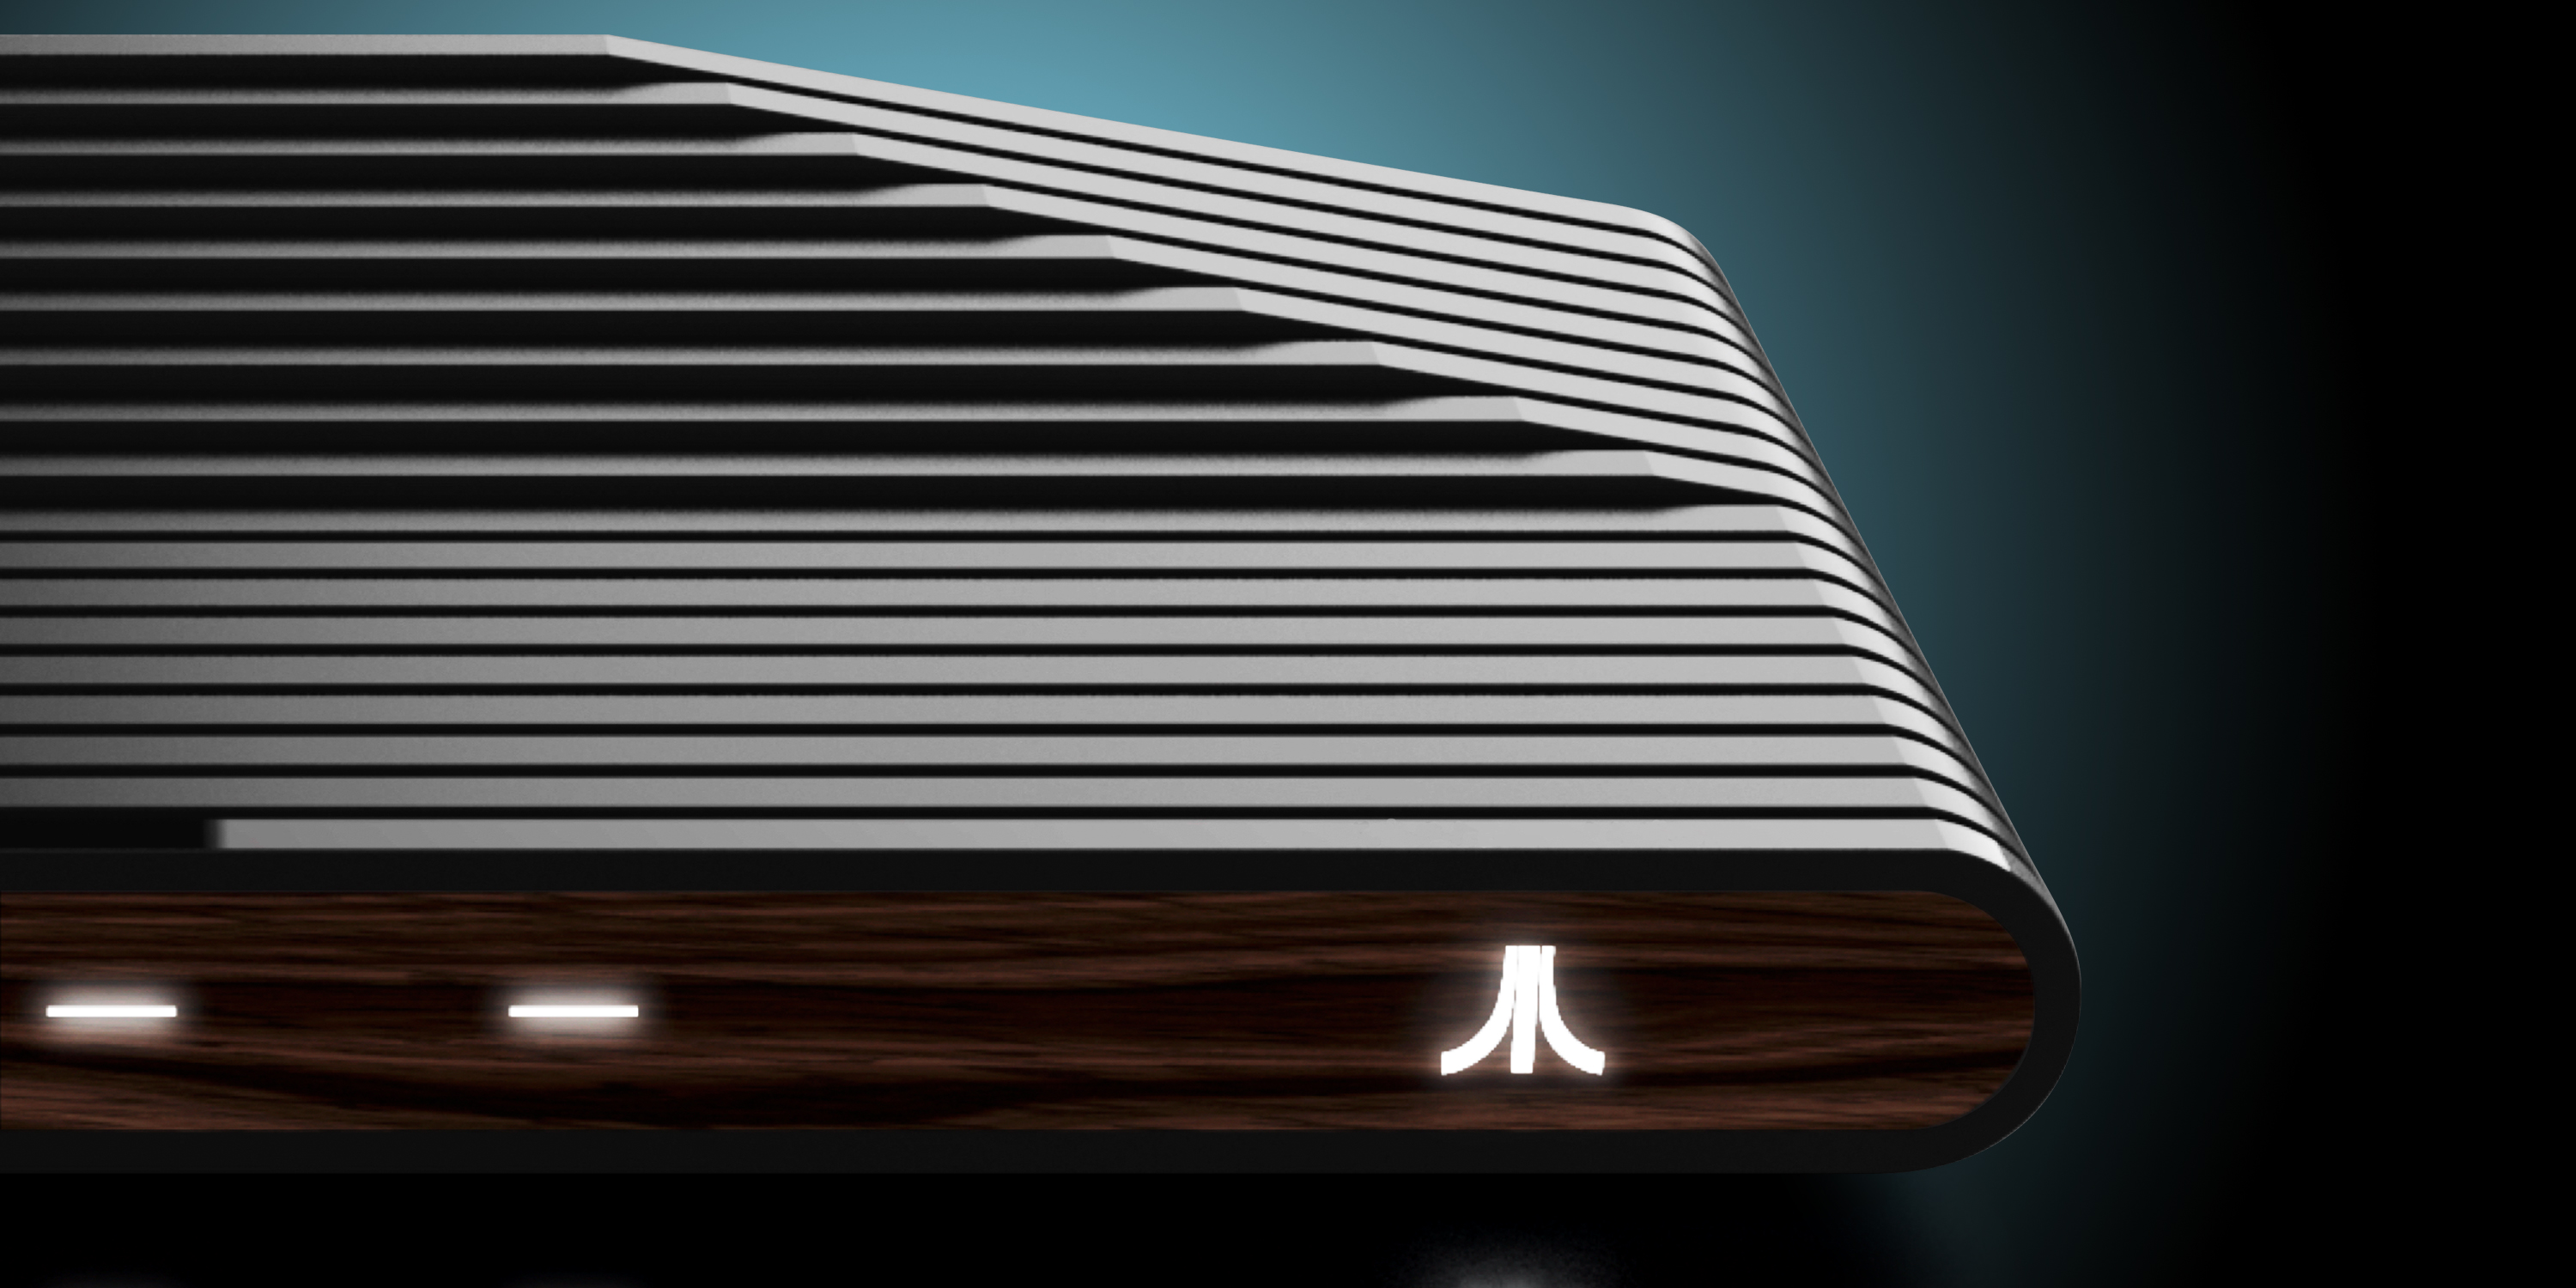 A New Atari Console Is On The Way